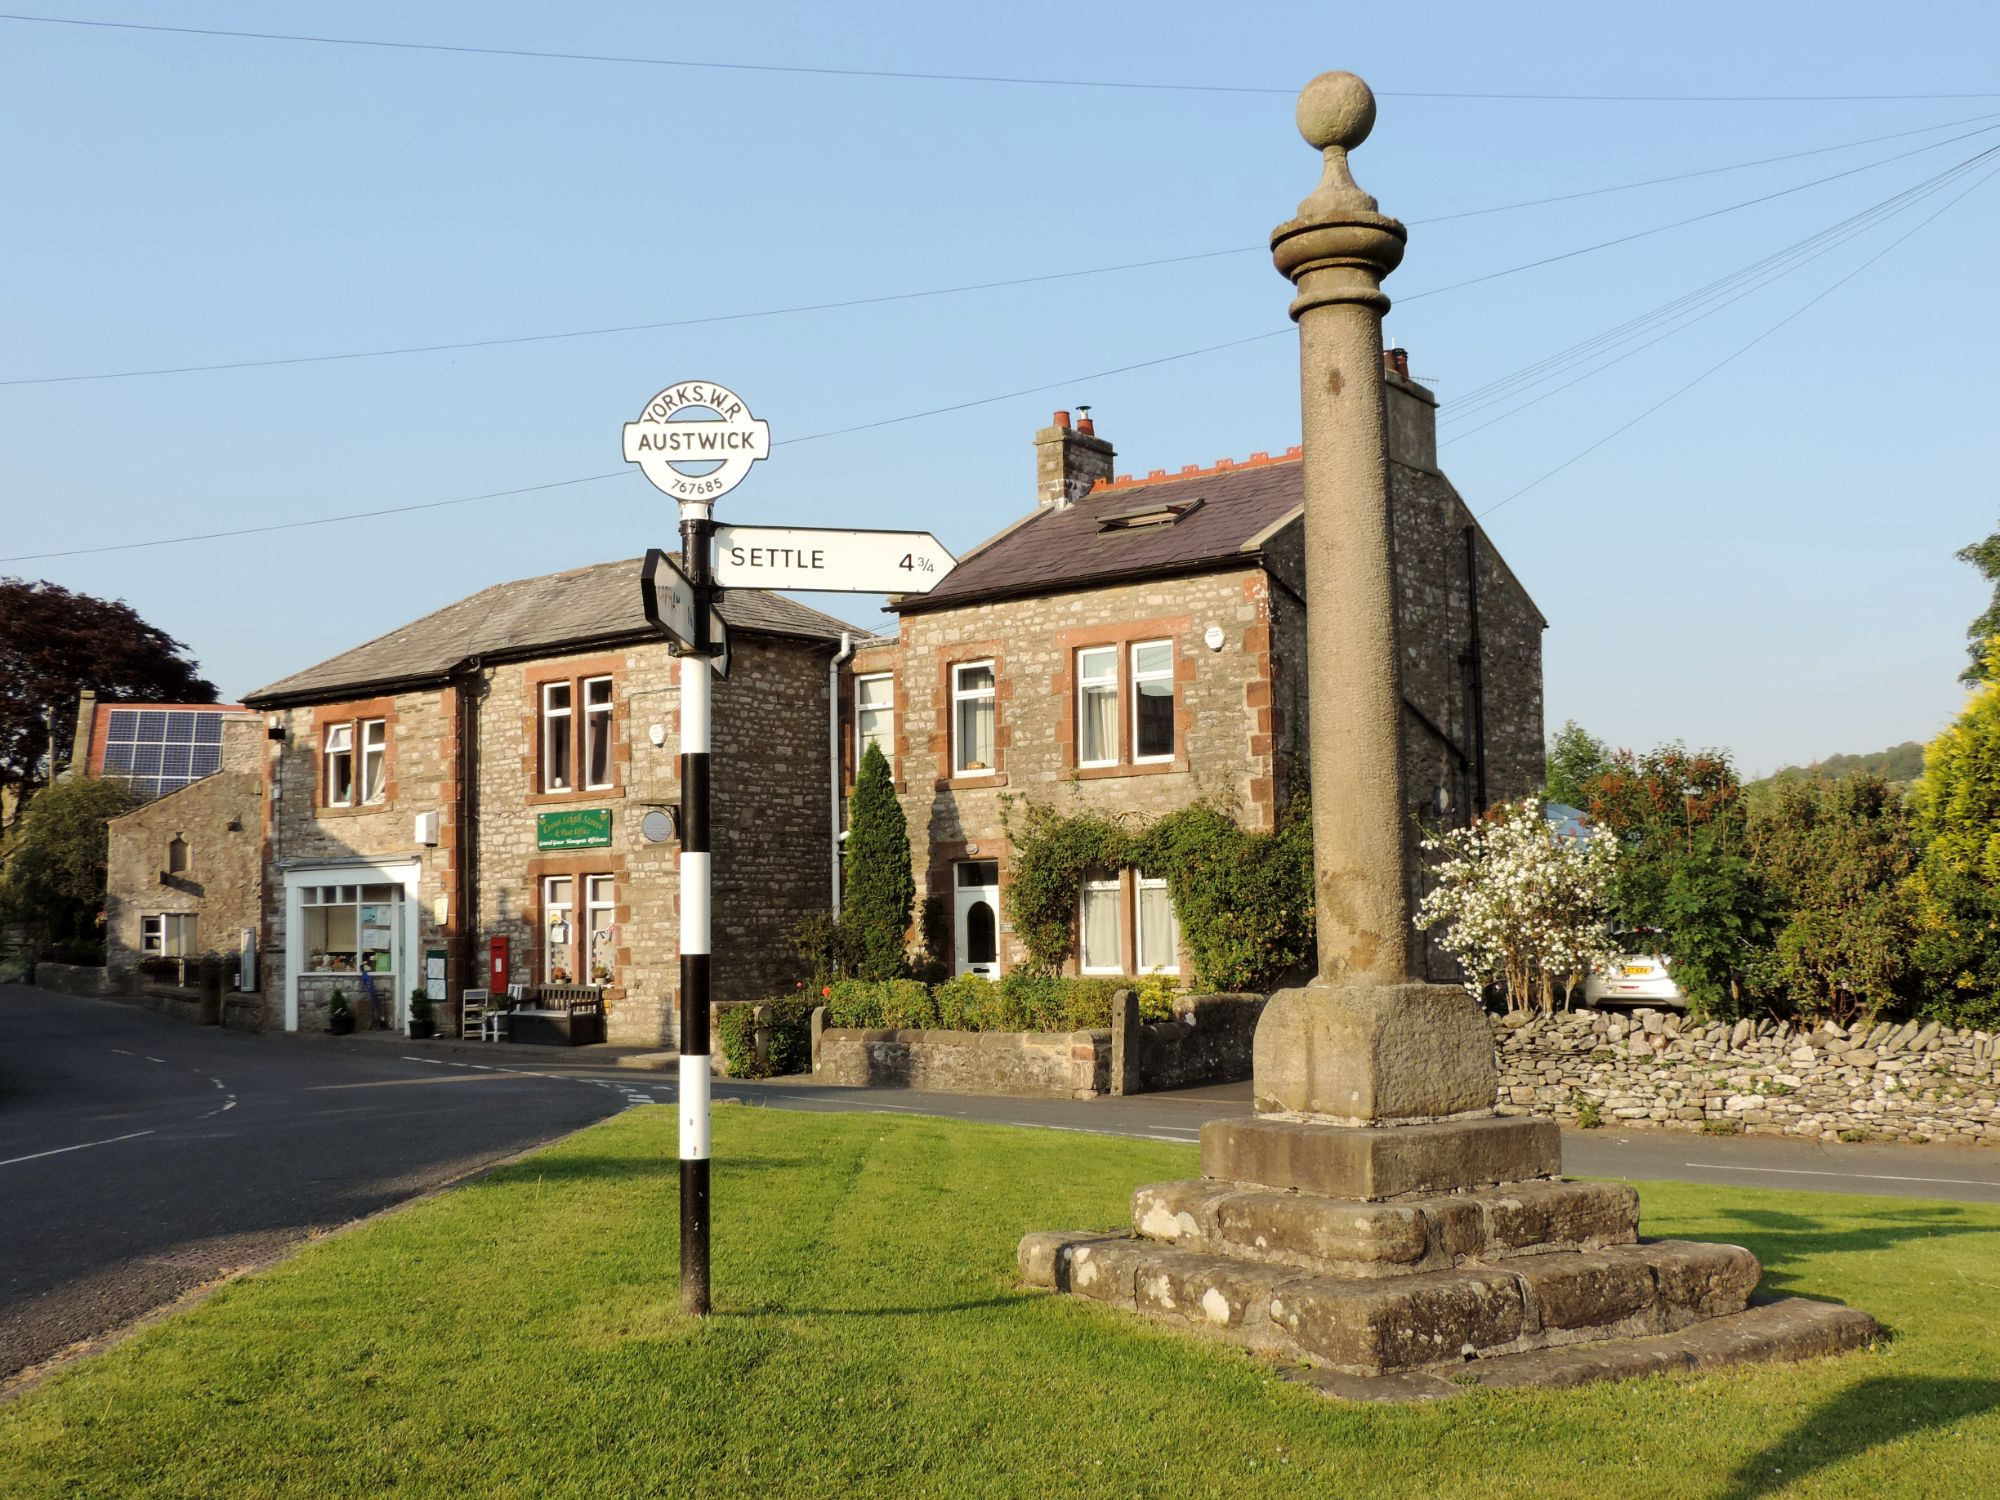 Market Cross on the village green in Austwick